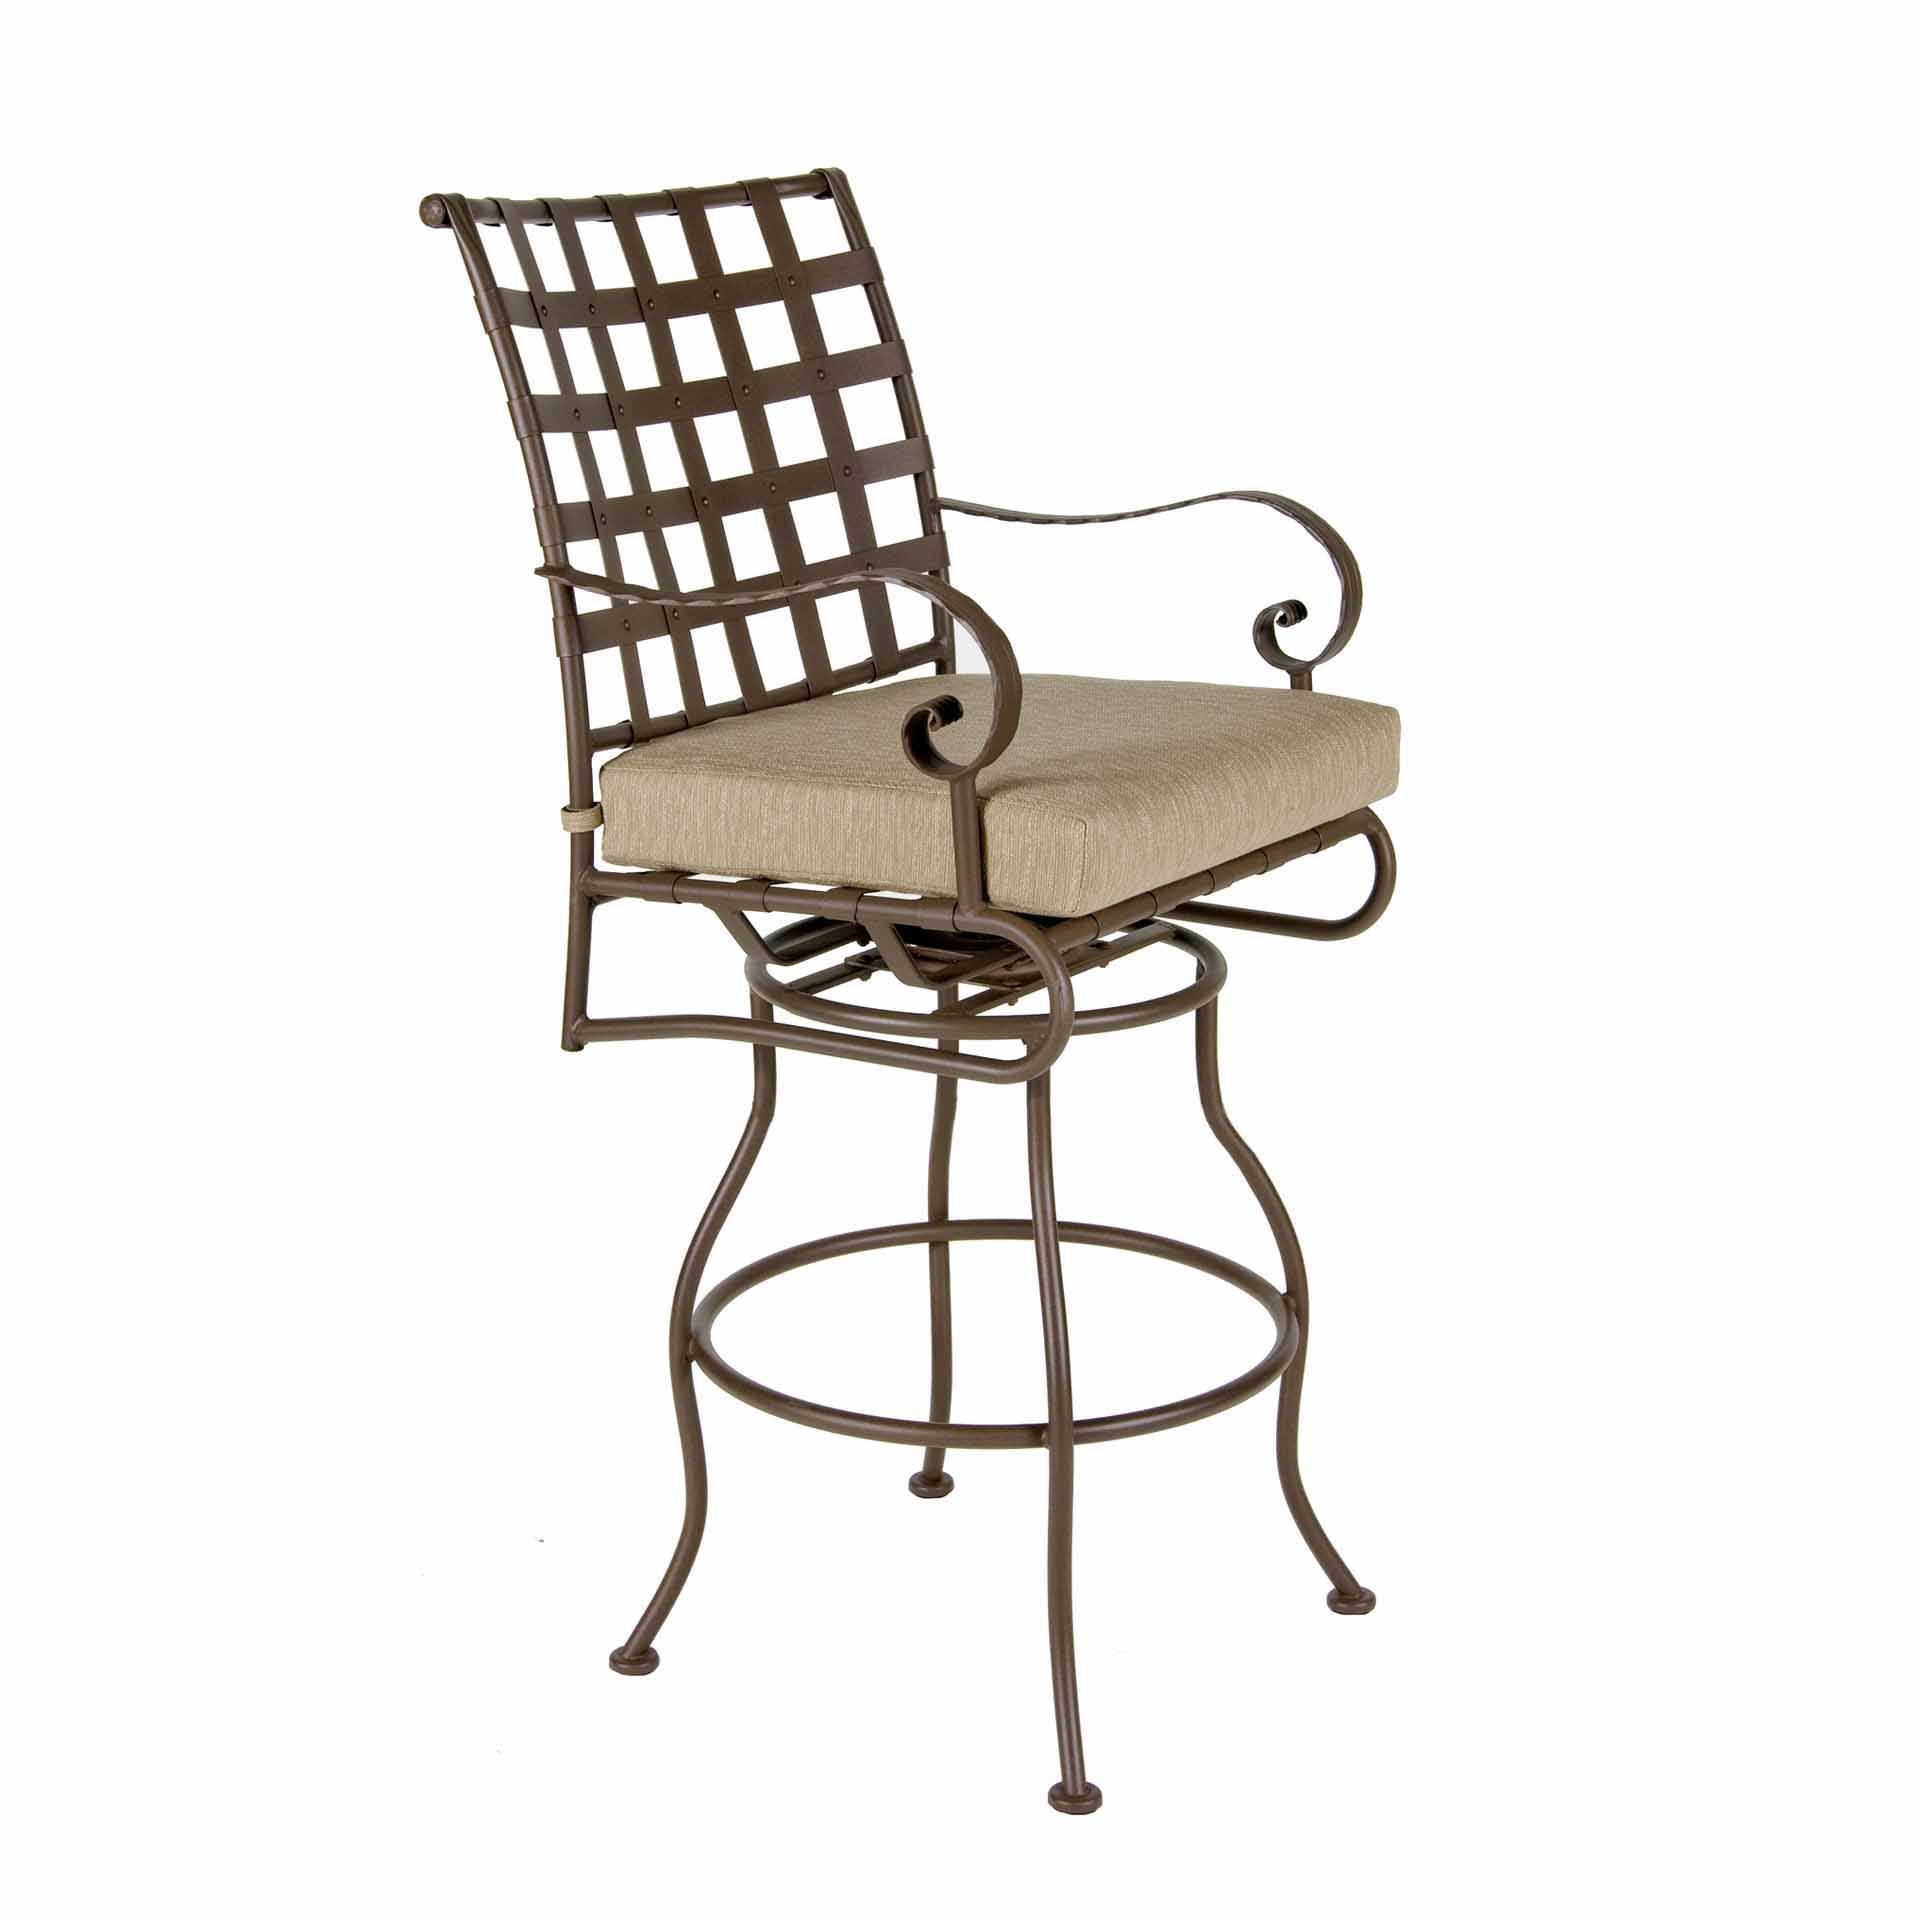 Ow Lee Classico Swivel Counter Stool With Arms Leisure